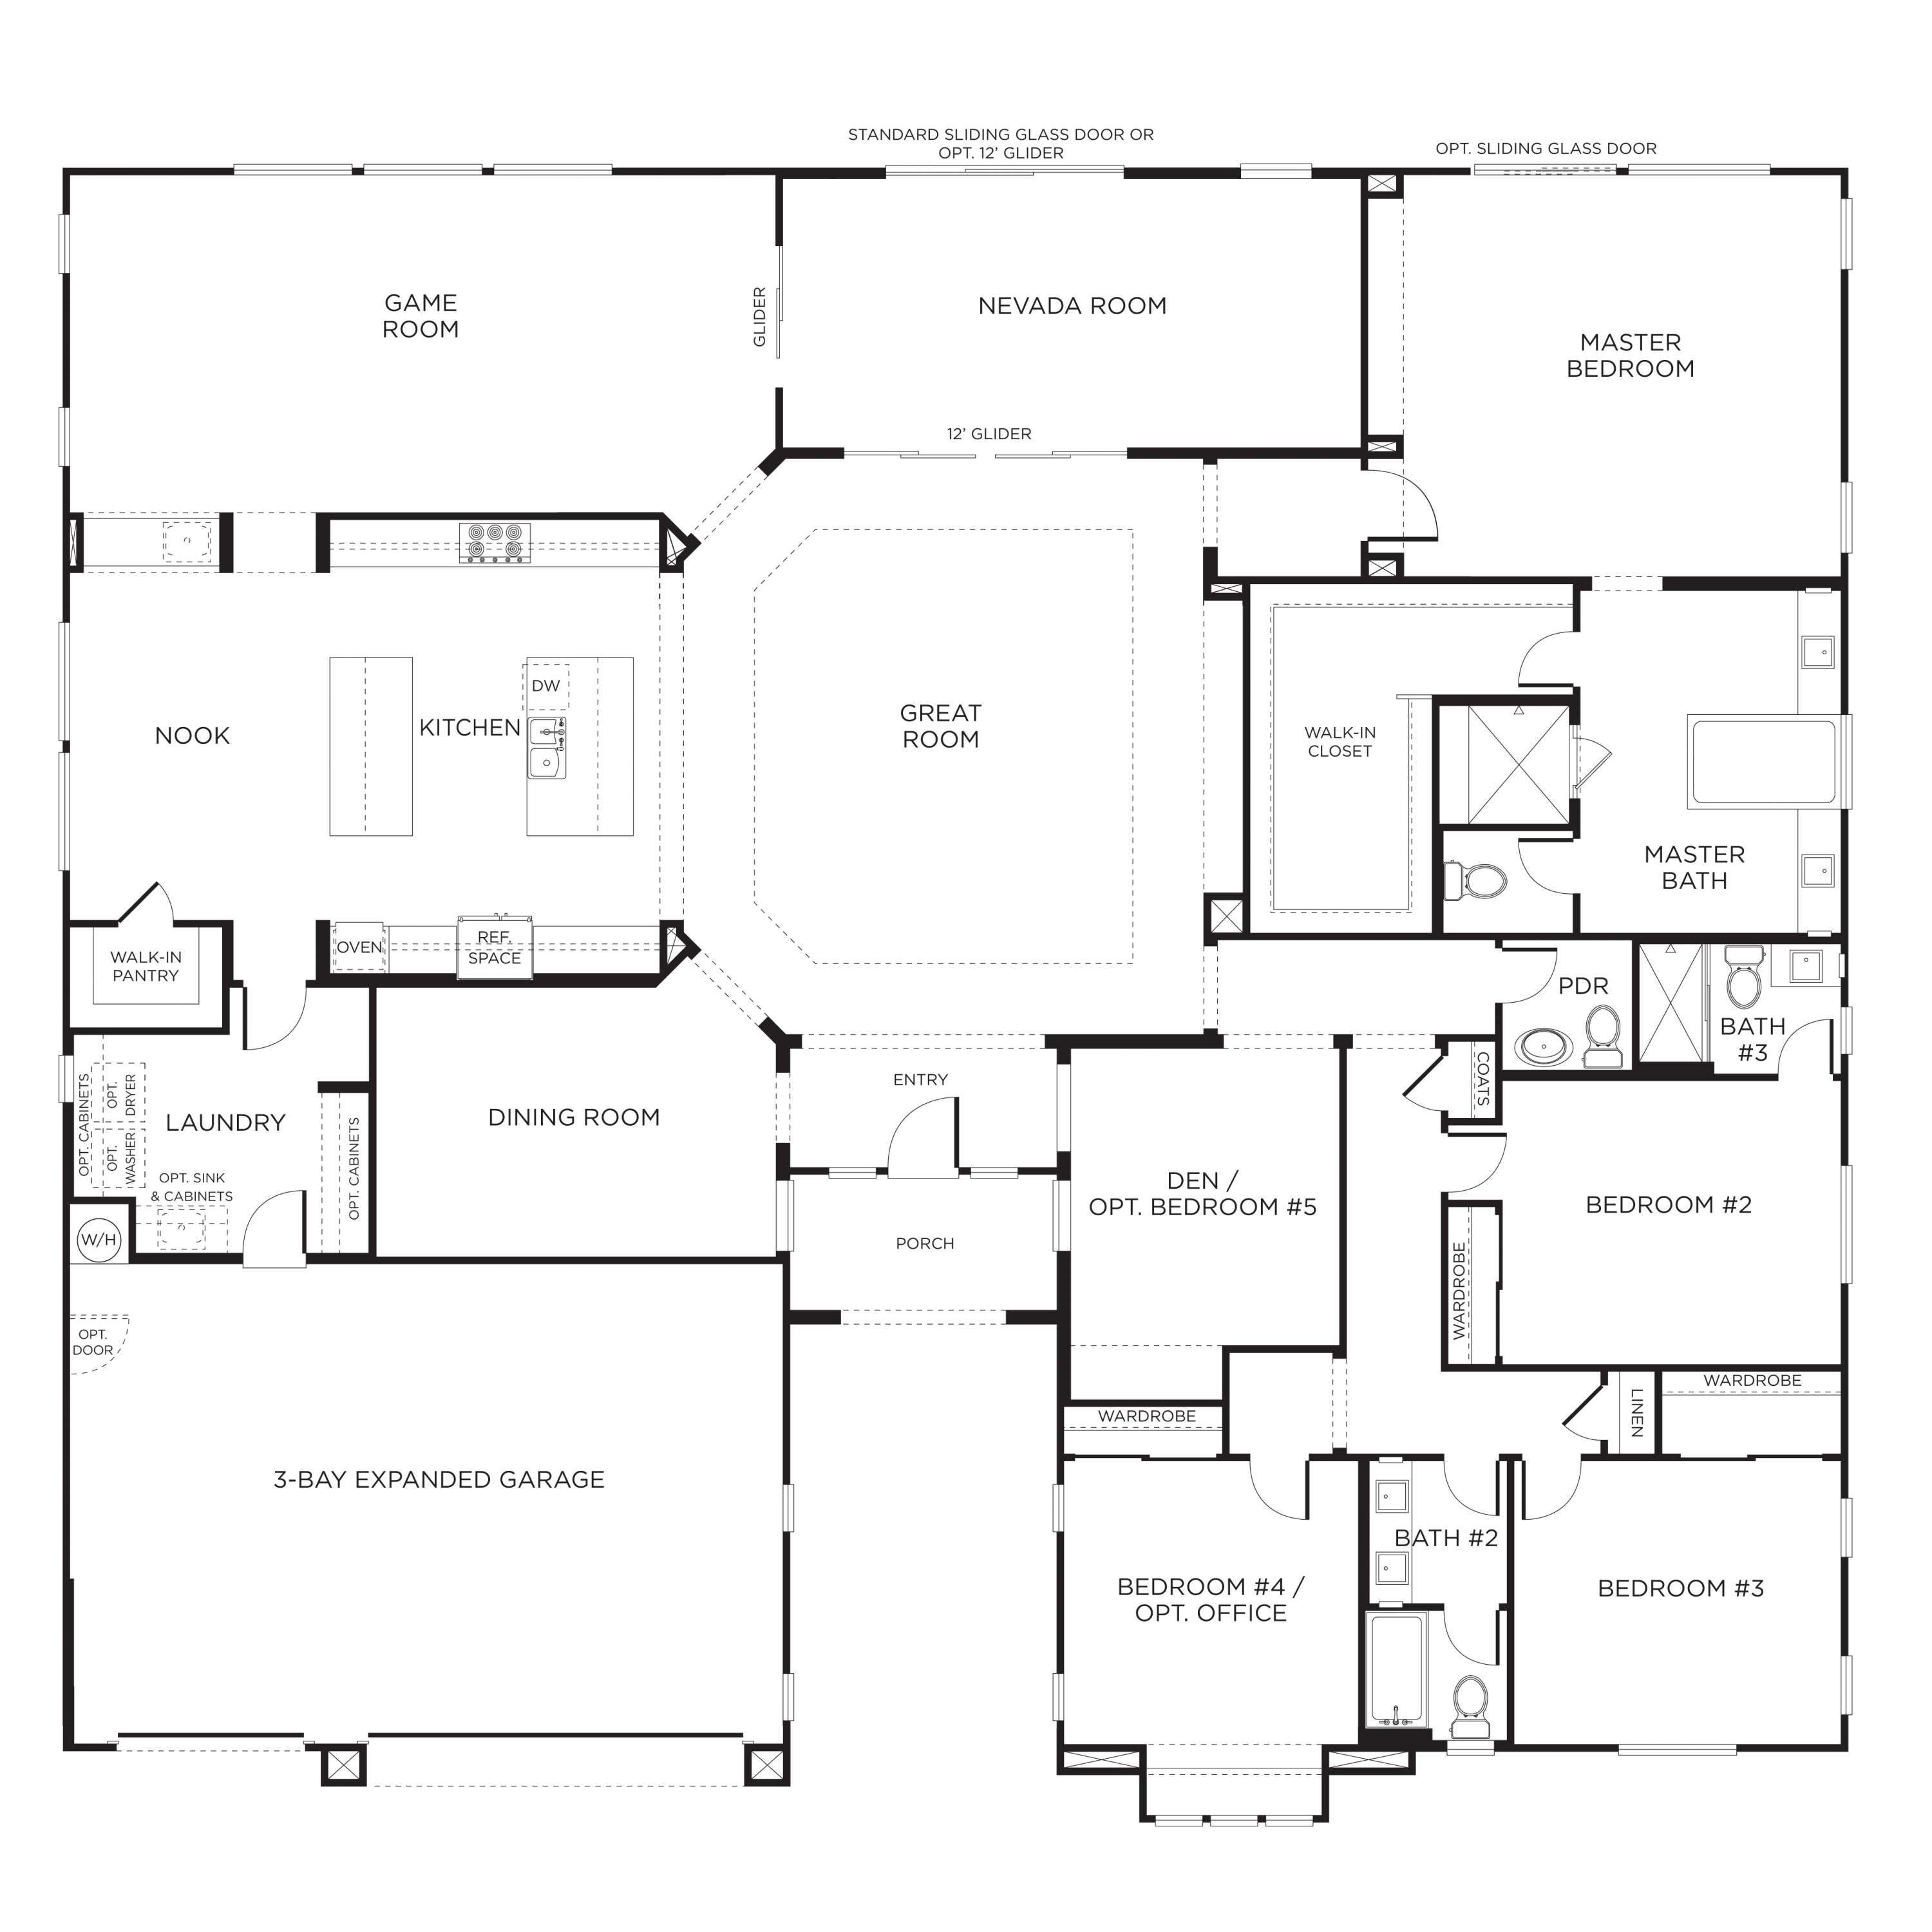 Best Bedroom 5 Bedroom House Plans One Story 5 Bedroom House Plans Nz 5 Bedroom House Plans Barndominium Floor Plans House Plans One Story